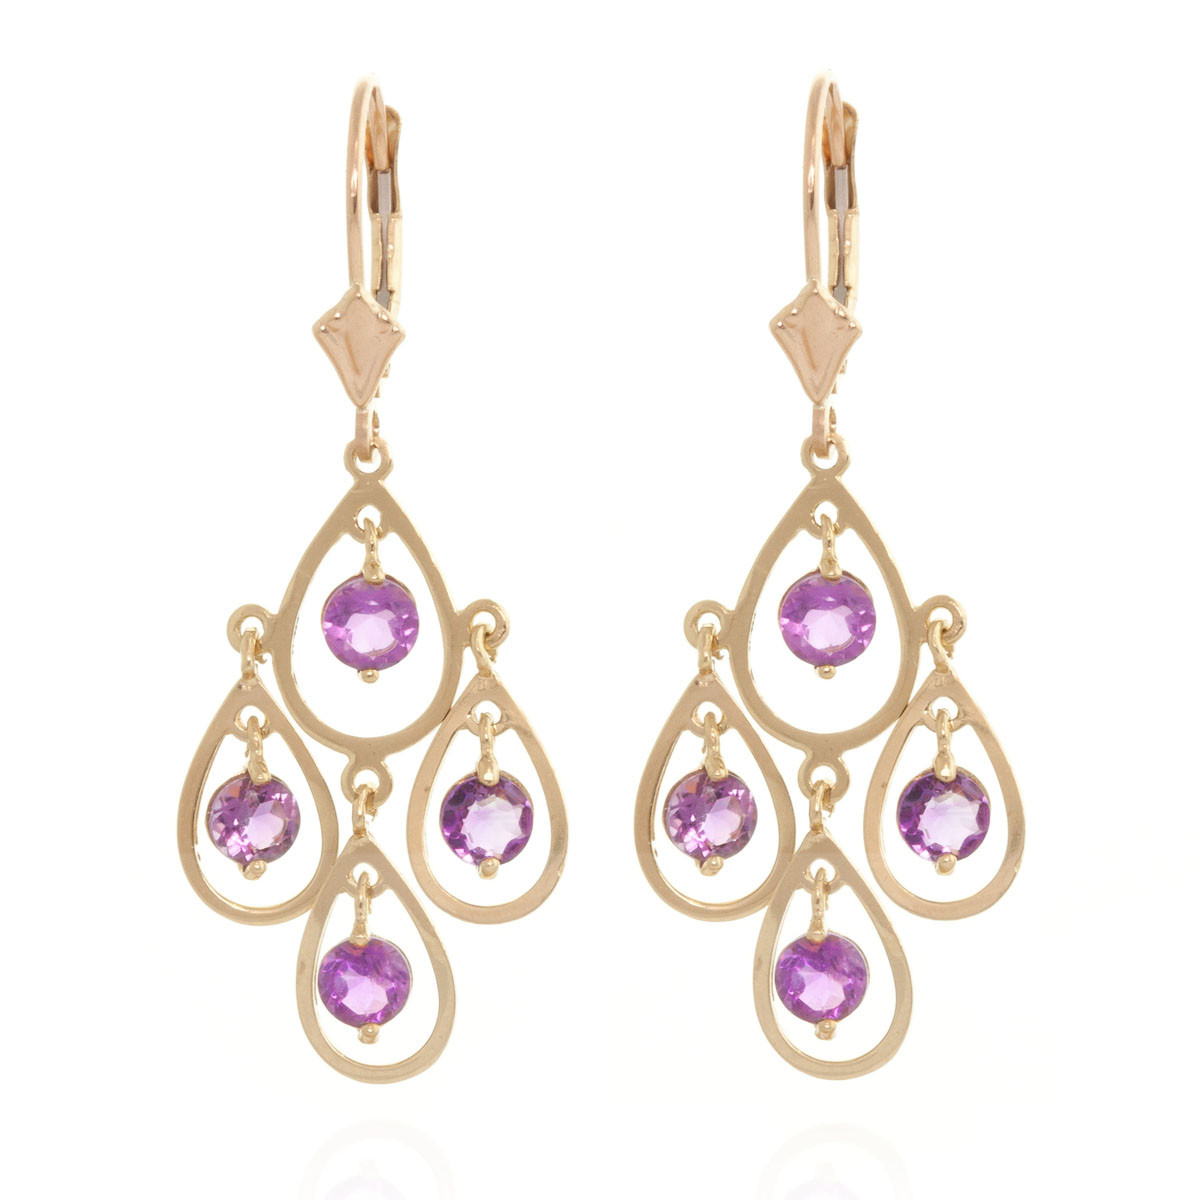 Amethyst Quadruplo Milan Drop Earrings 2.4 ctw in 9ct Gold